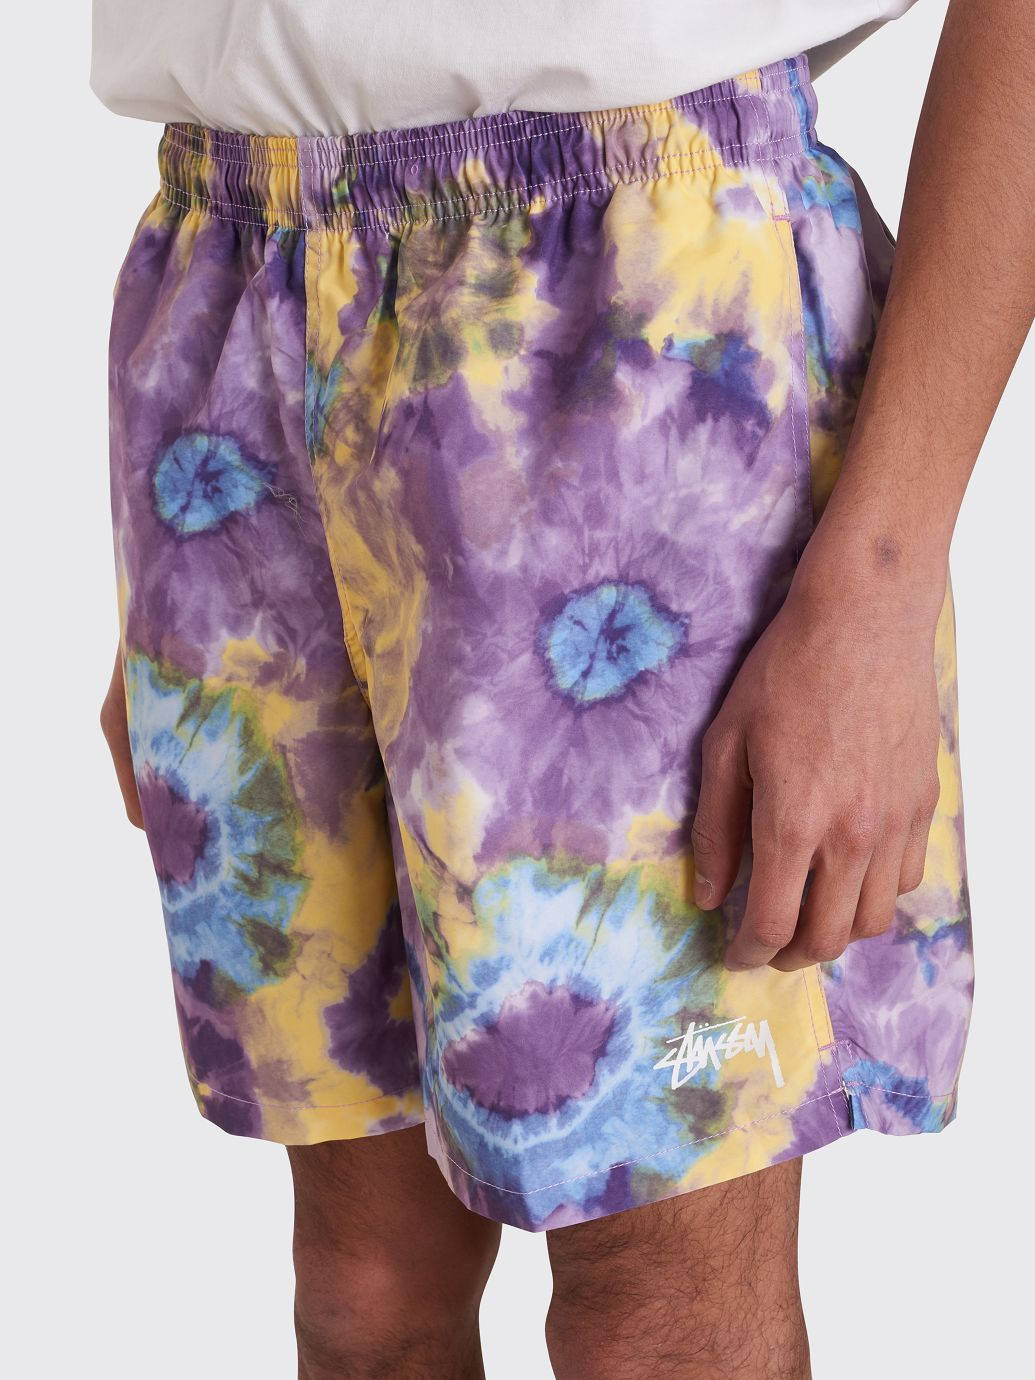 5990ec32bd Stüssy Tie Dye Water Shorts Purple in 2019 | tie dye & washes | Tie ...